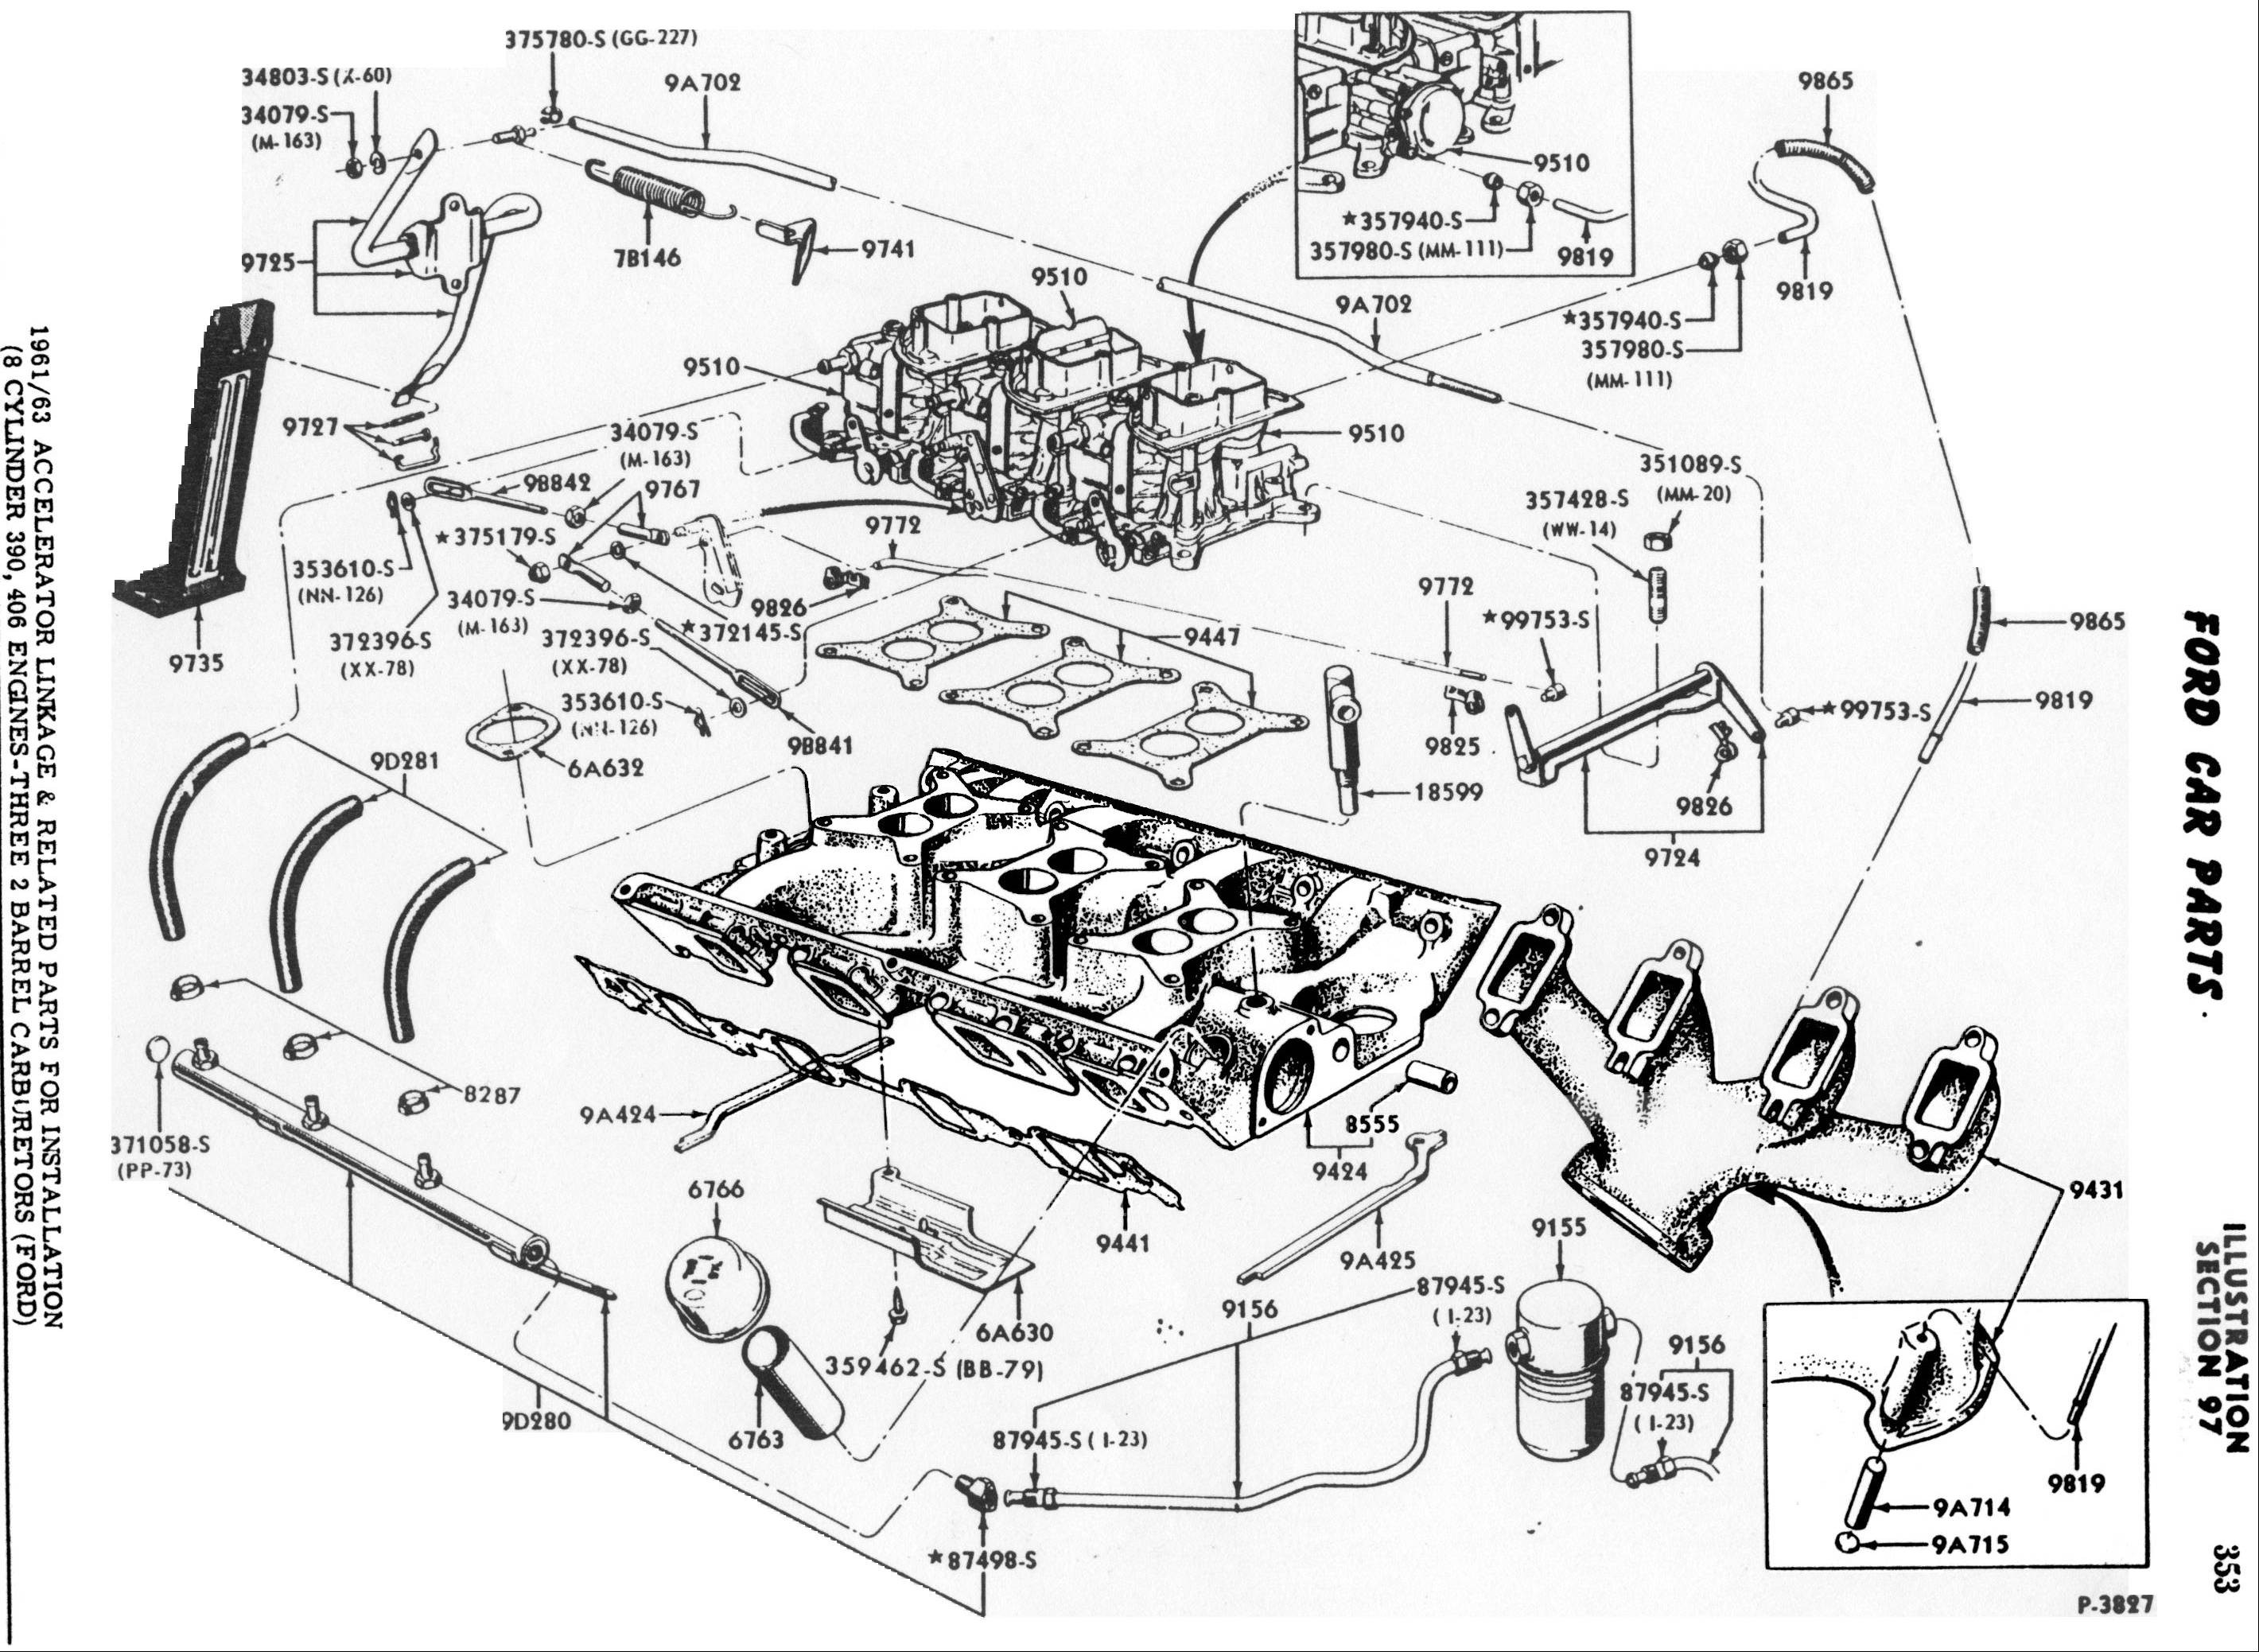 2006 Dodge Charger Engine Diagram How To Change Timing Belt 3 5l Diagrams 460 Ford Wiring Info Of